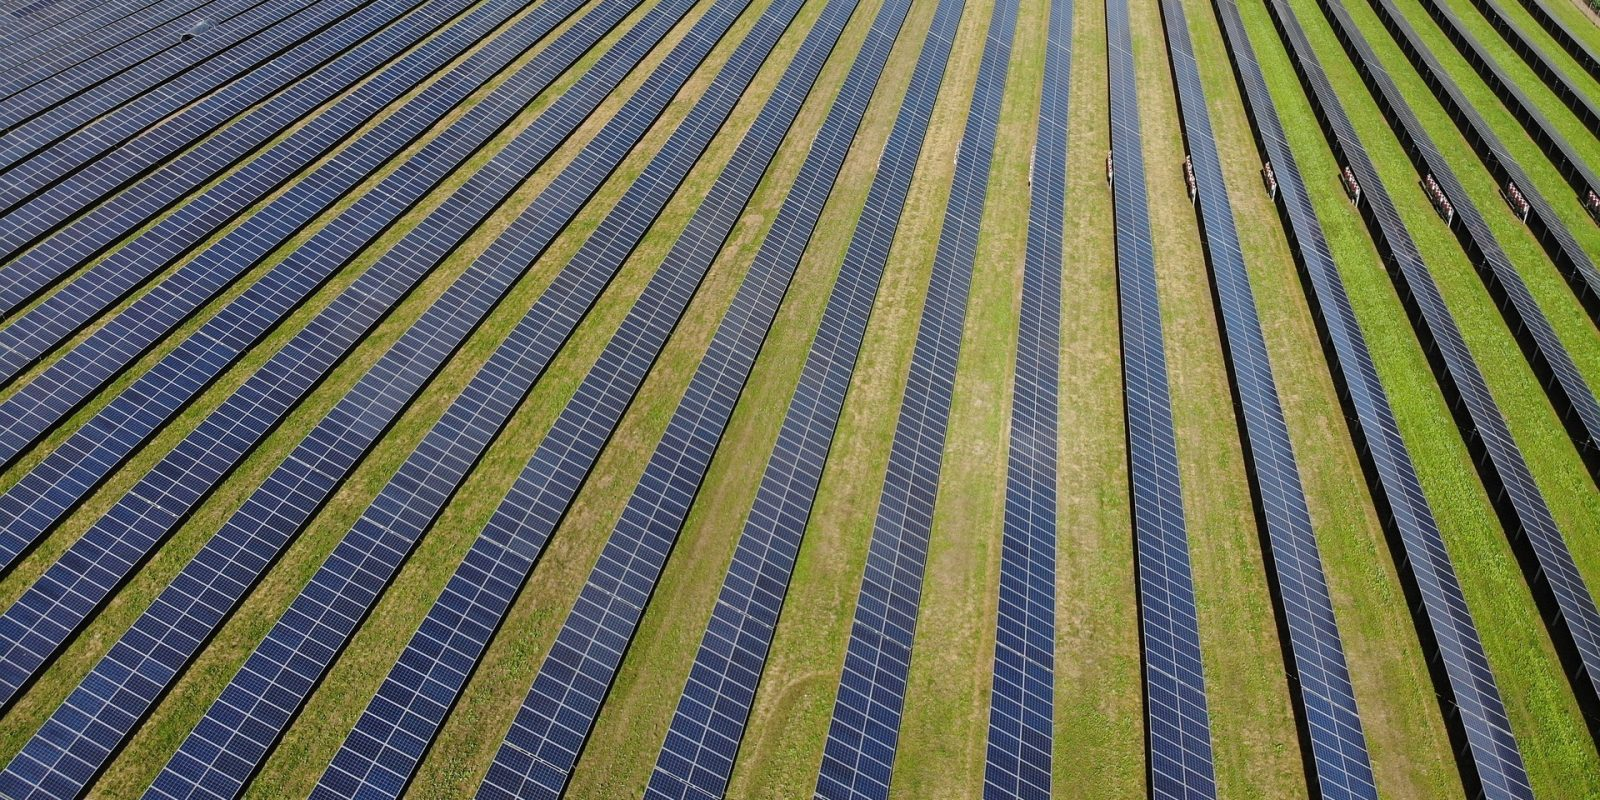 US solar market sees strongest Q1 ever, industry boosts forecast as costs fall despite Trump tariffs